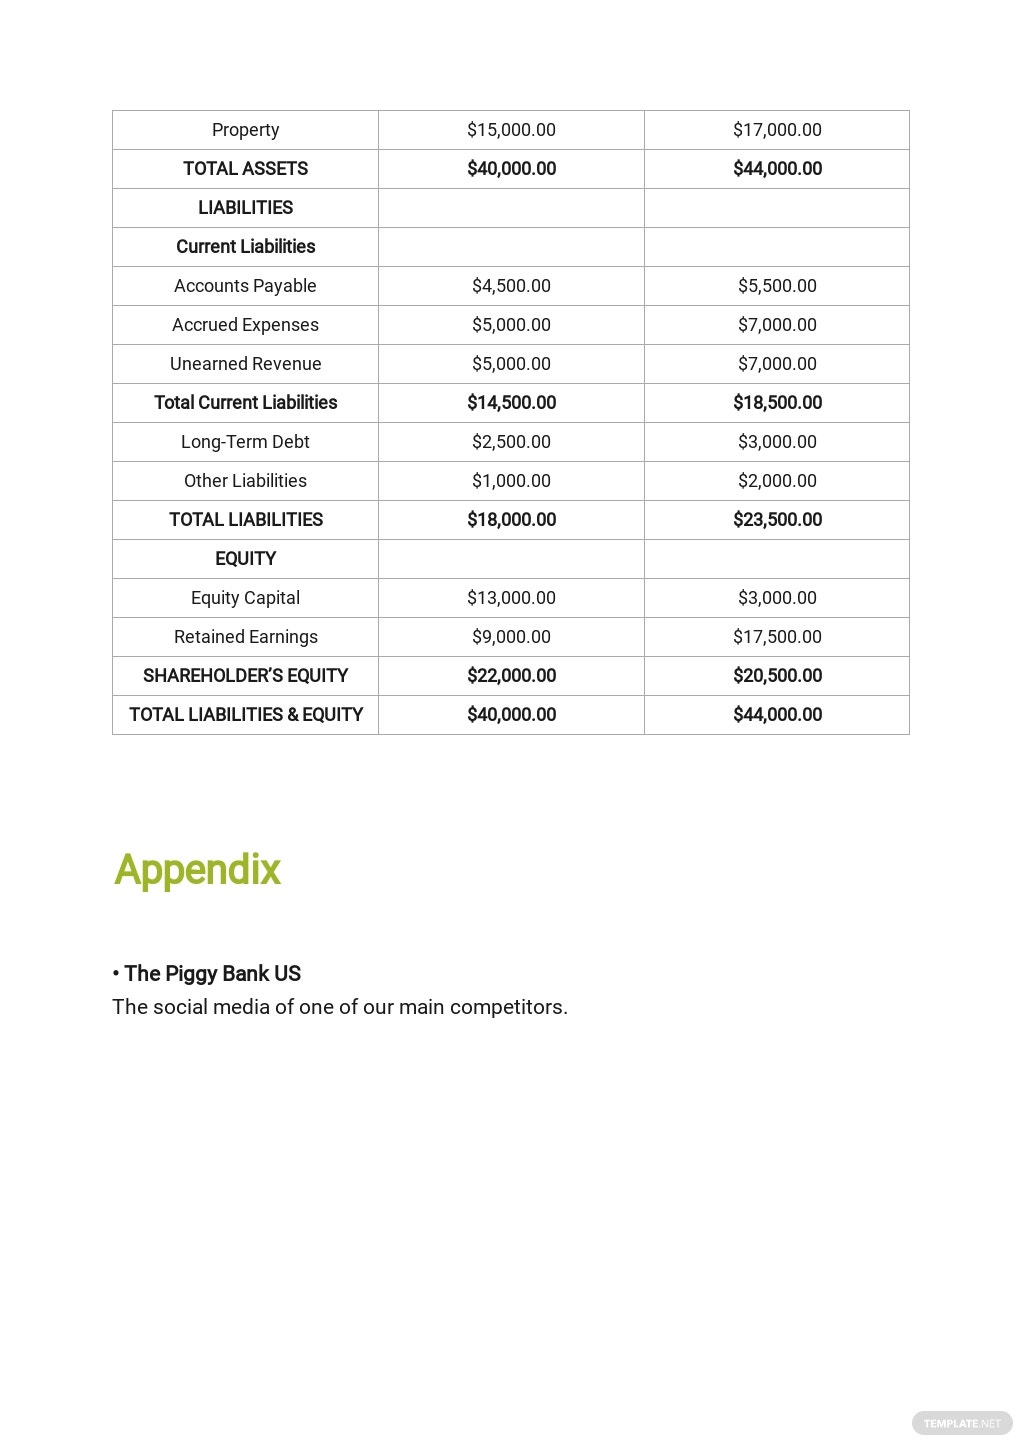 Investment Company Business Plan Template 8.jpe